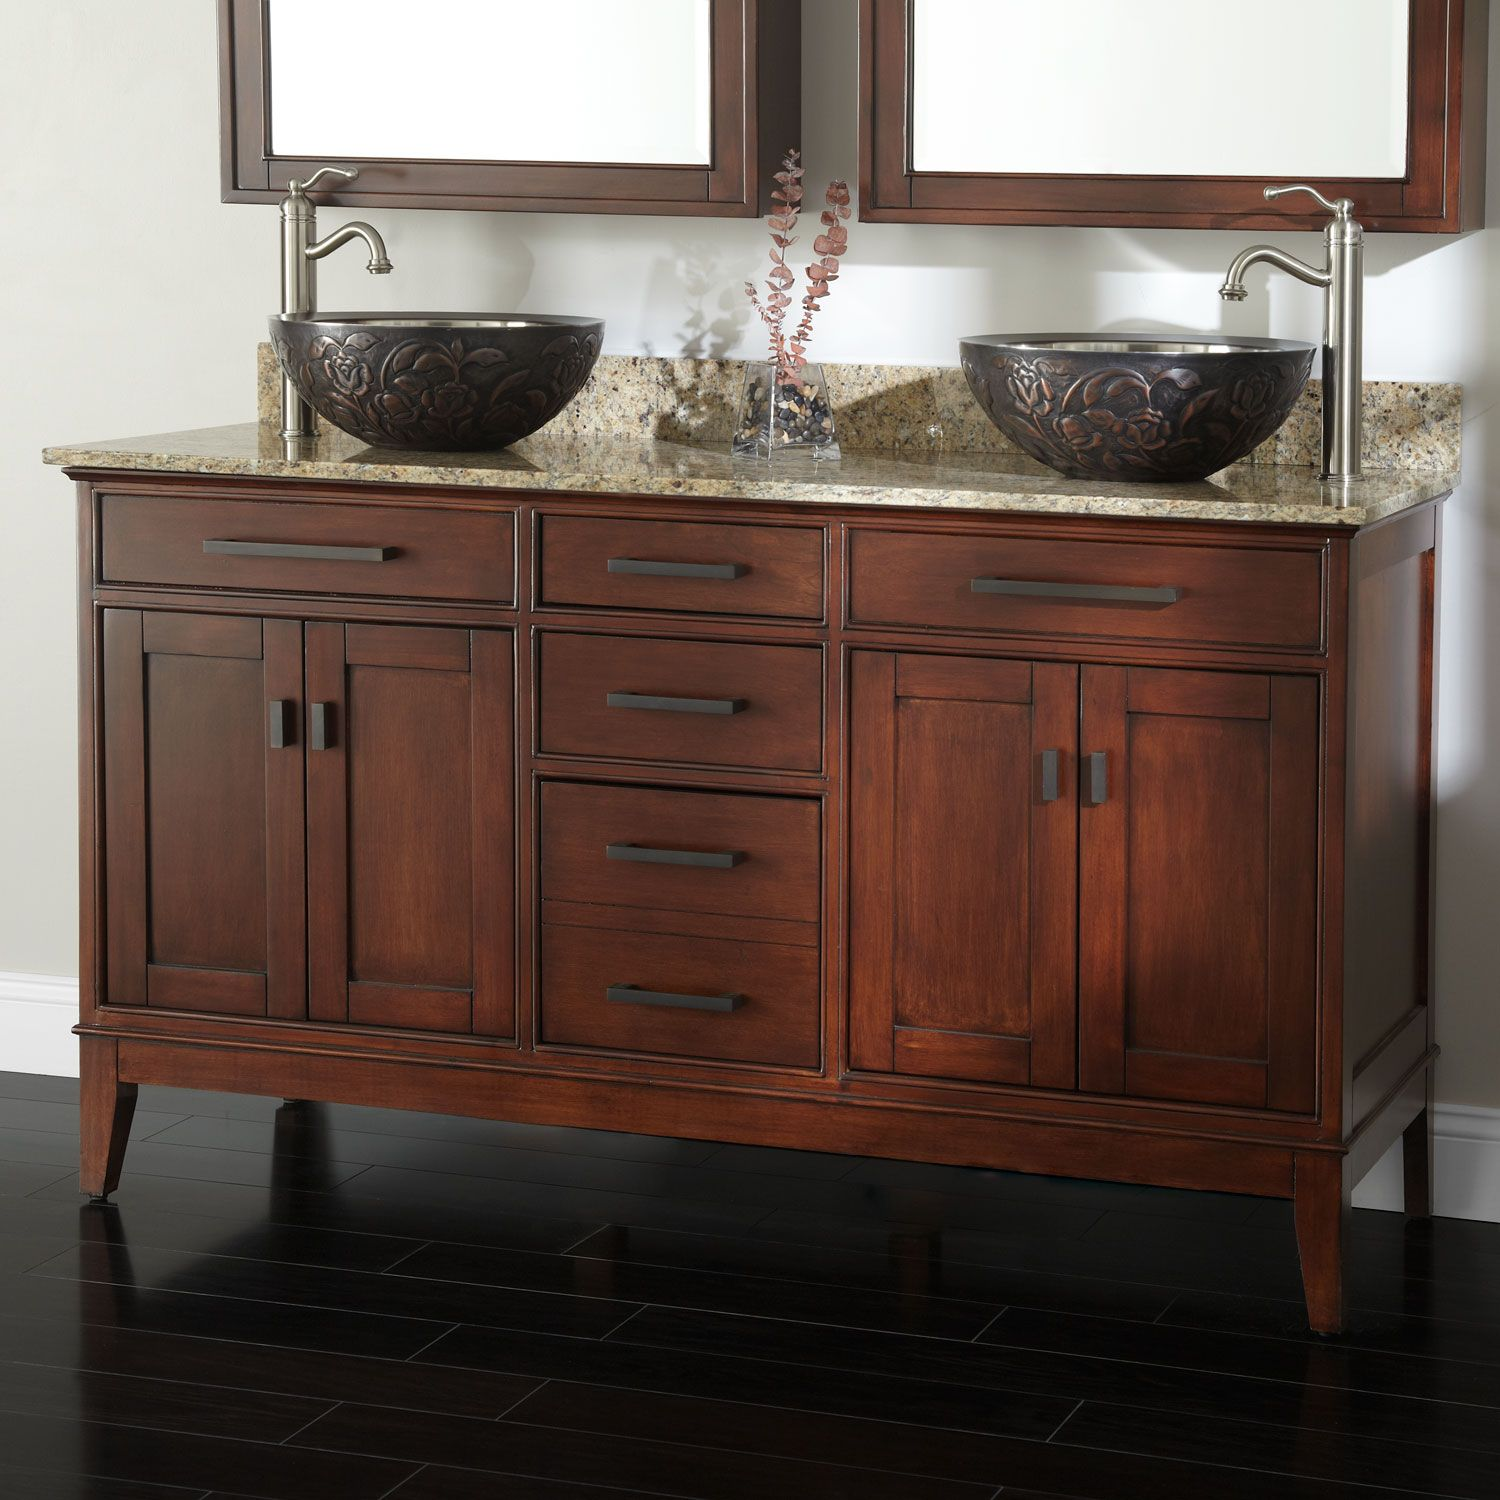 Double Bowl Sink Vanity.Double Vessel Sink Vanities Vanities 60 Tobacco Madison